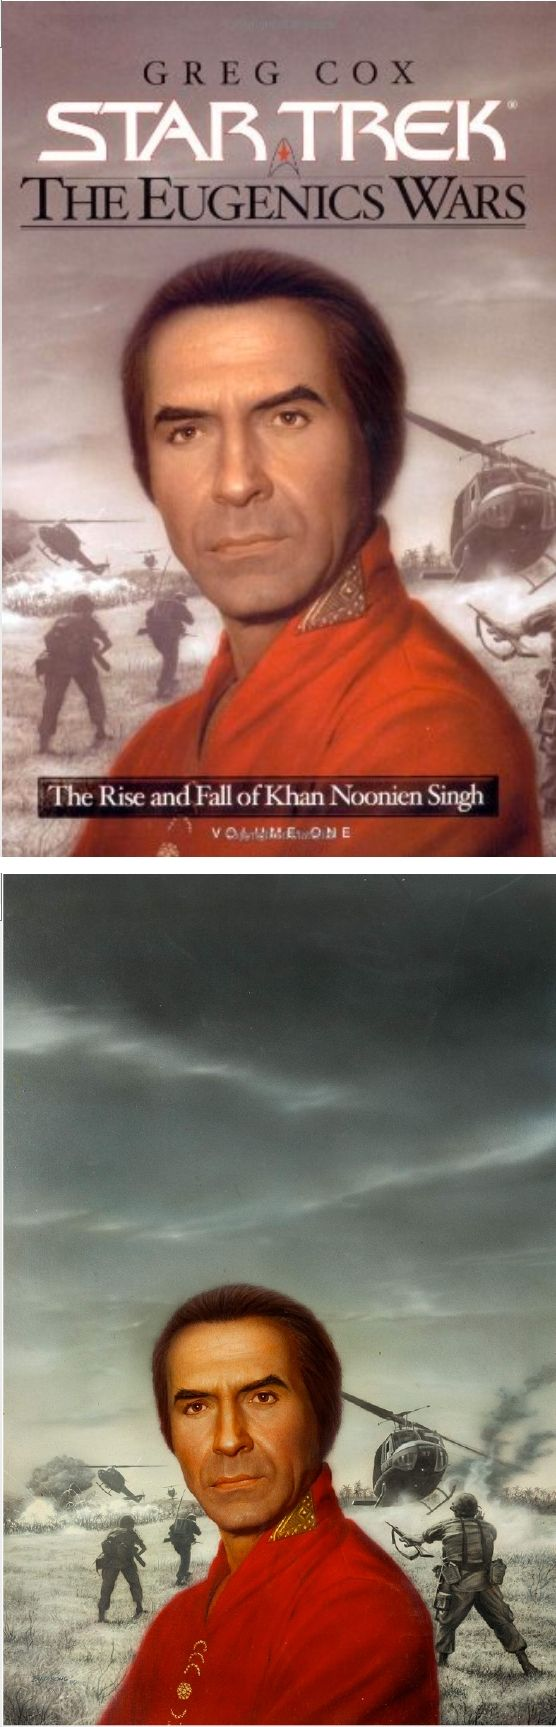 KEITH BIRDSONG - The Rise and Fall of Khan Noonien Singh, Volume One by Greg Cox - 2001 Pocket Books - cover by Amazon - print by fineart.ha